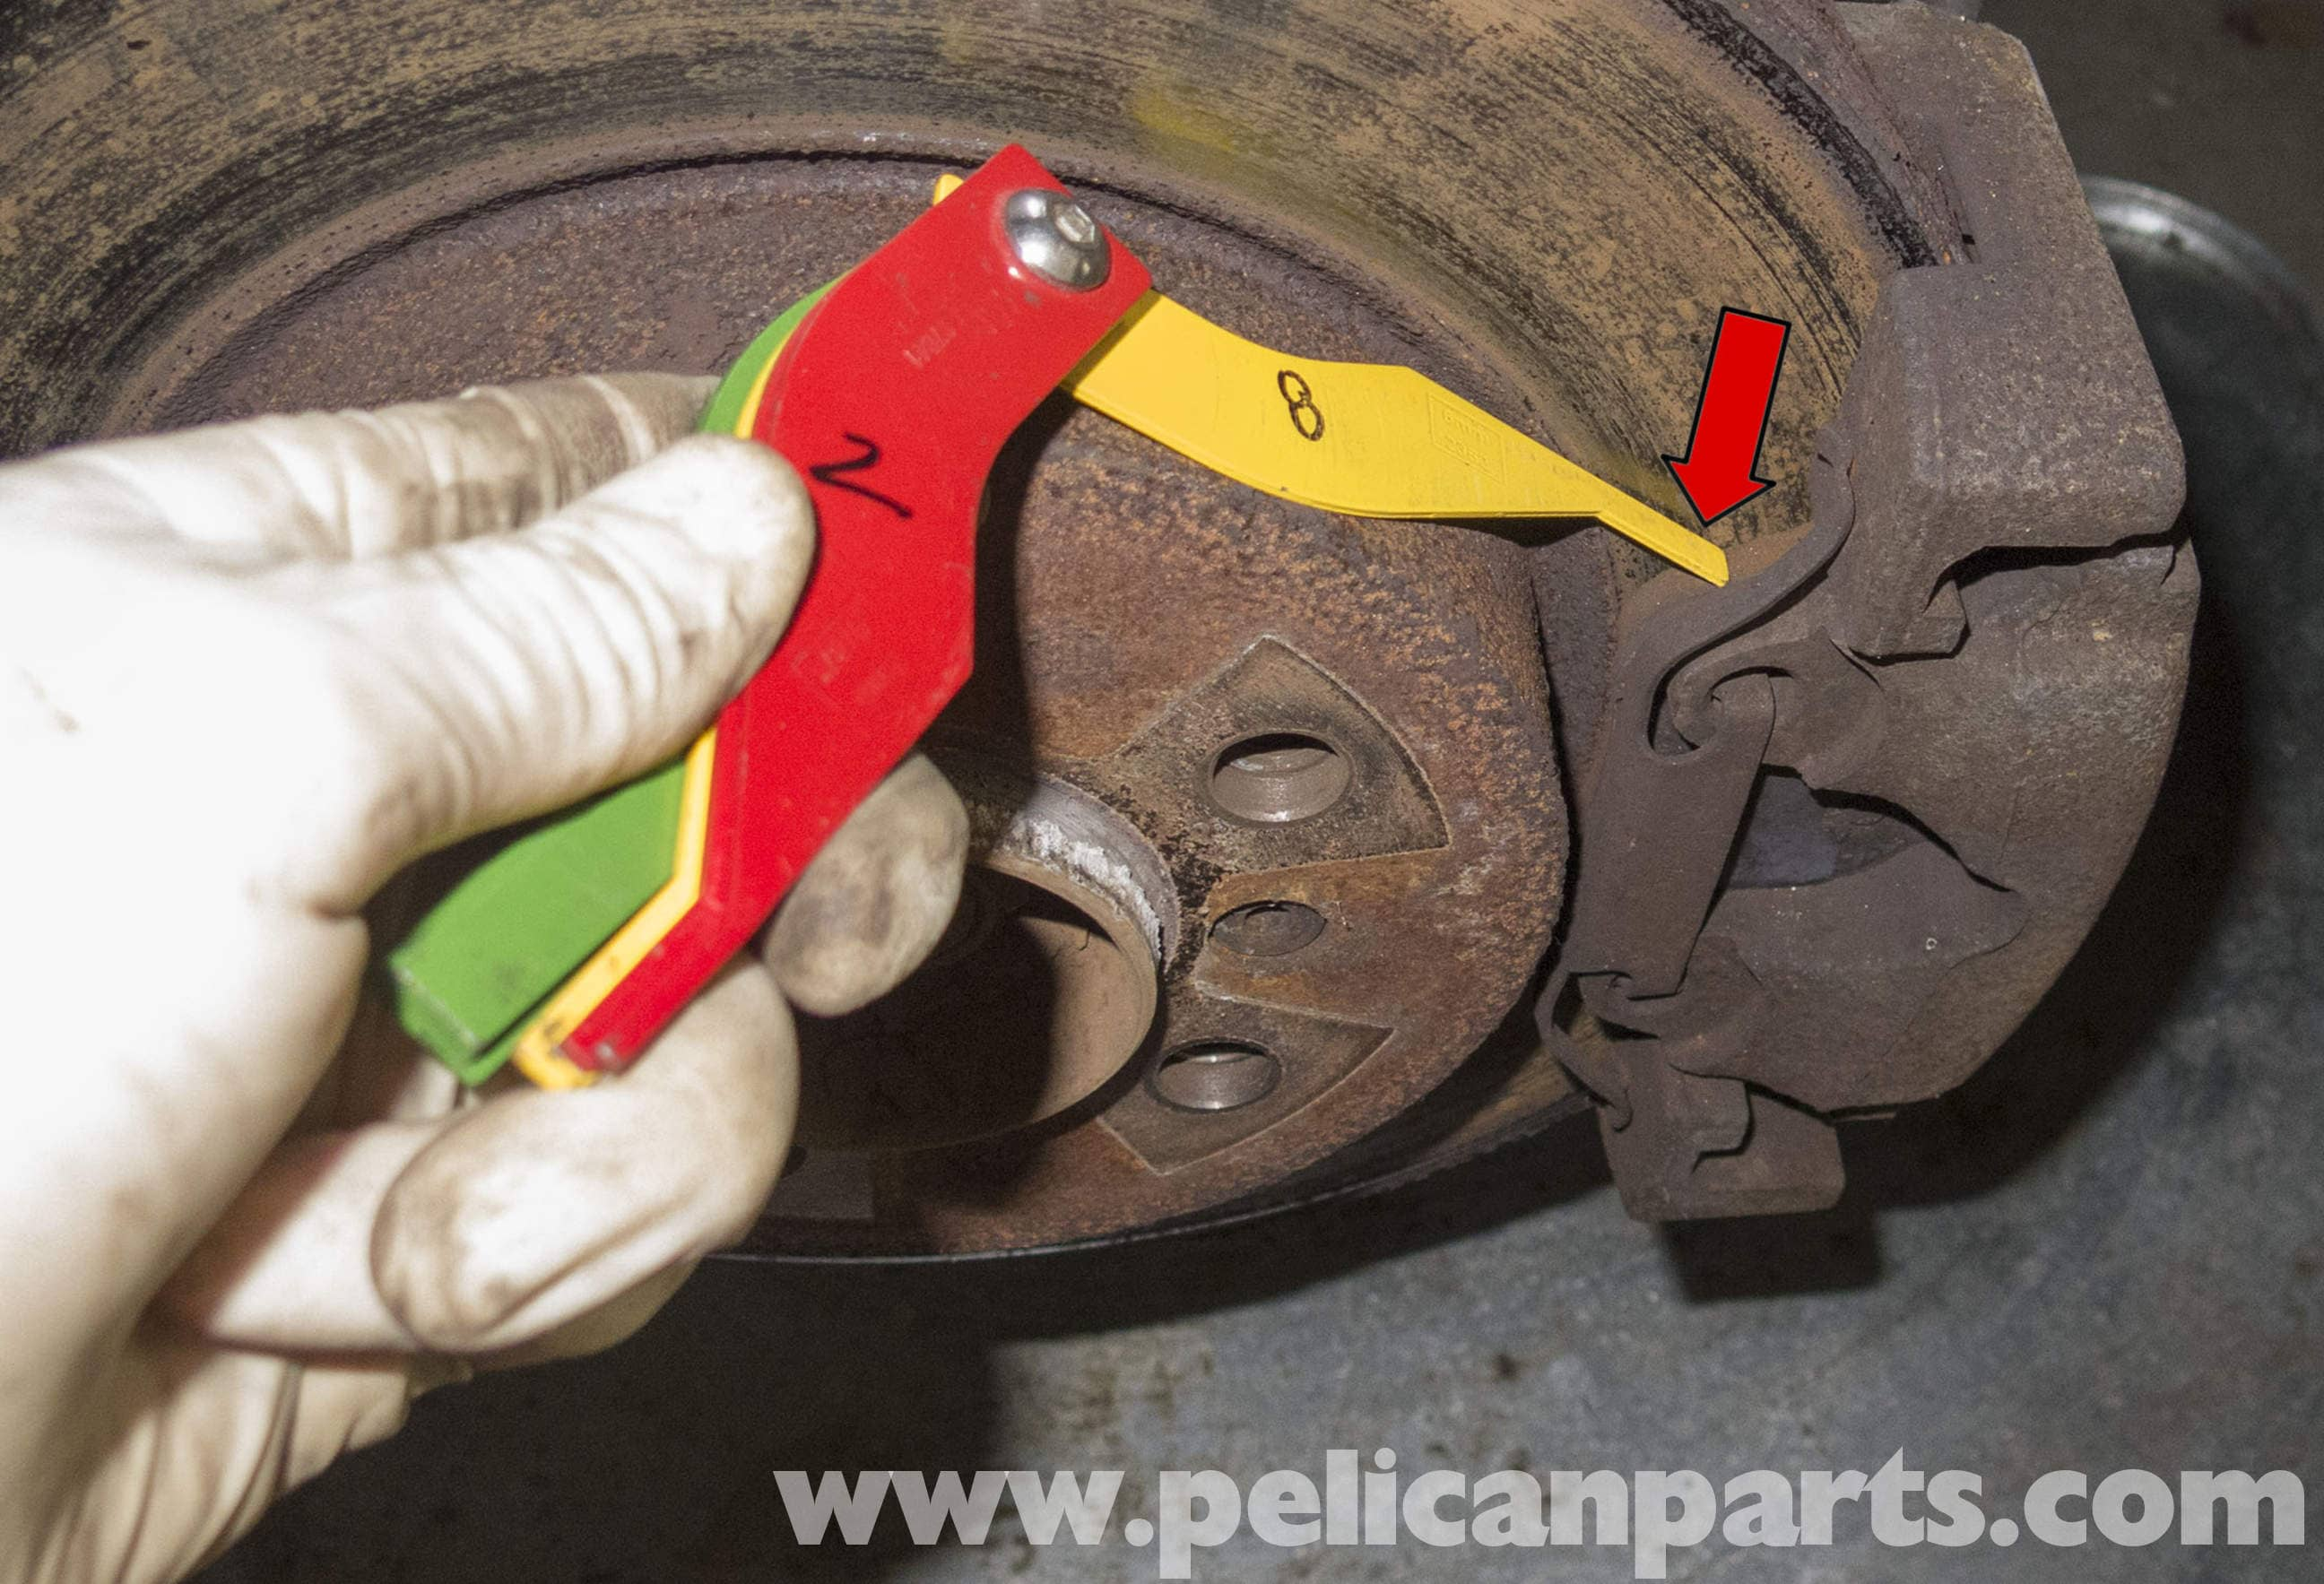 Pelican Parts Technical Article - BMW-X3 - Brake Rotor